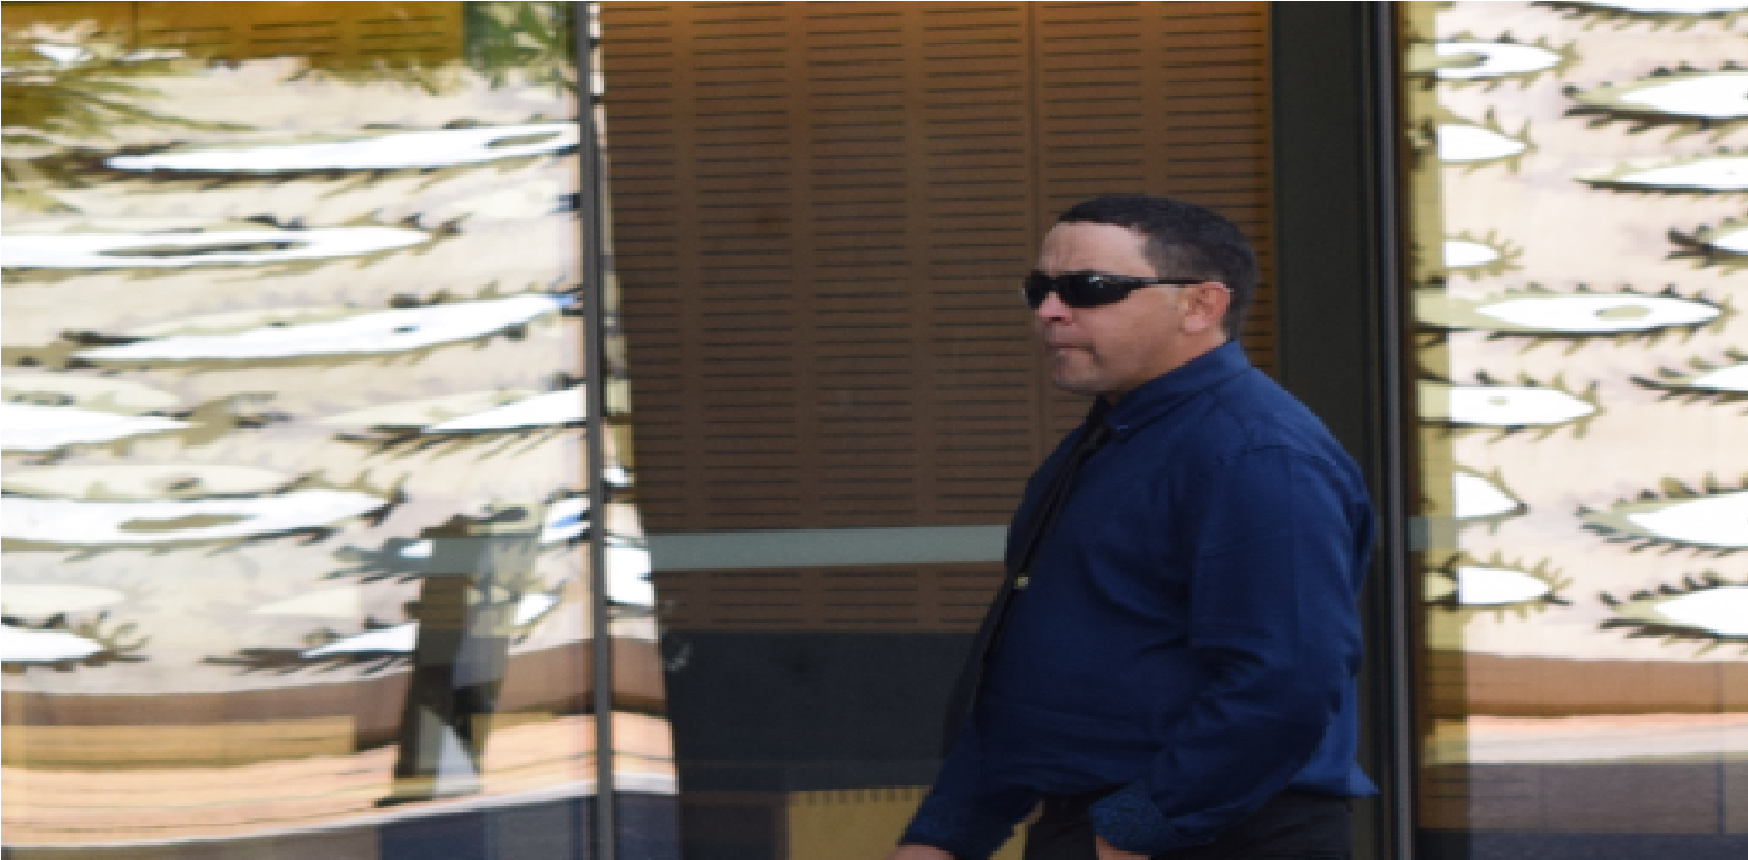 Court Image: Roma man, Troy Angus Kearns, 32. Stands accused of stabbing his brother.